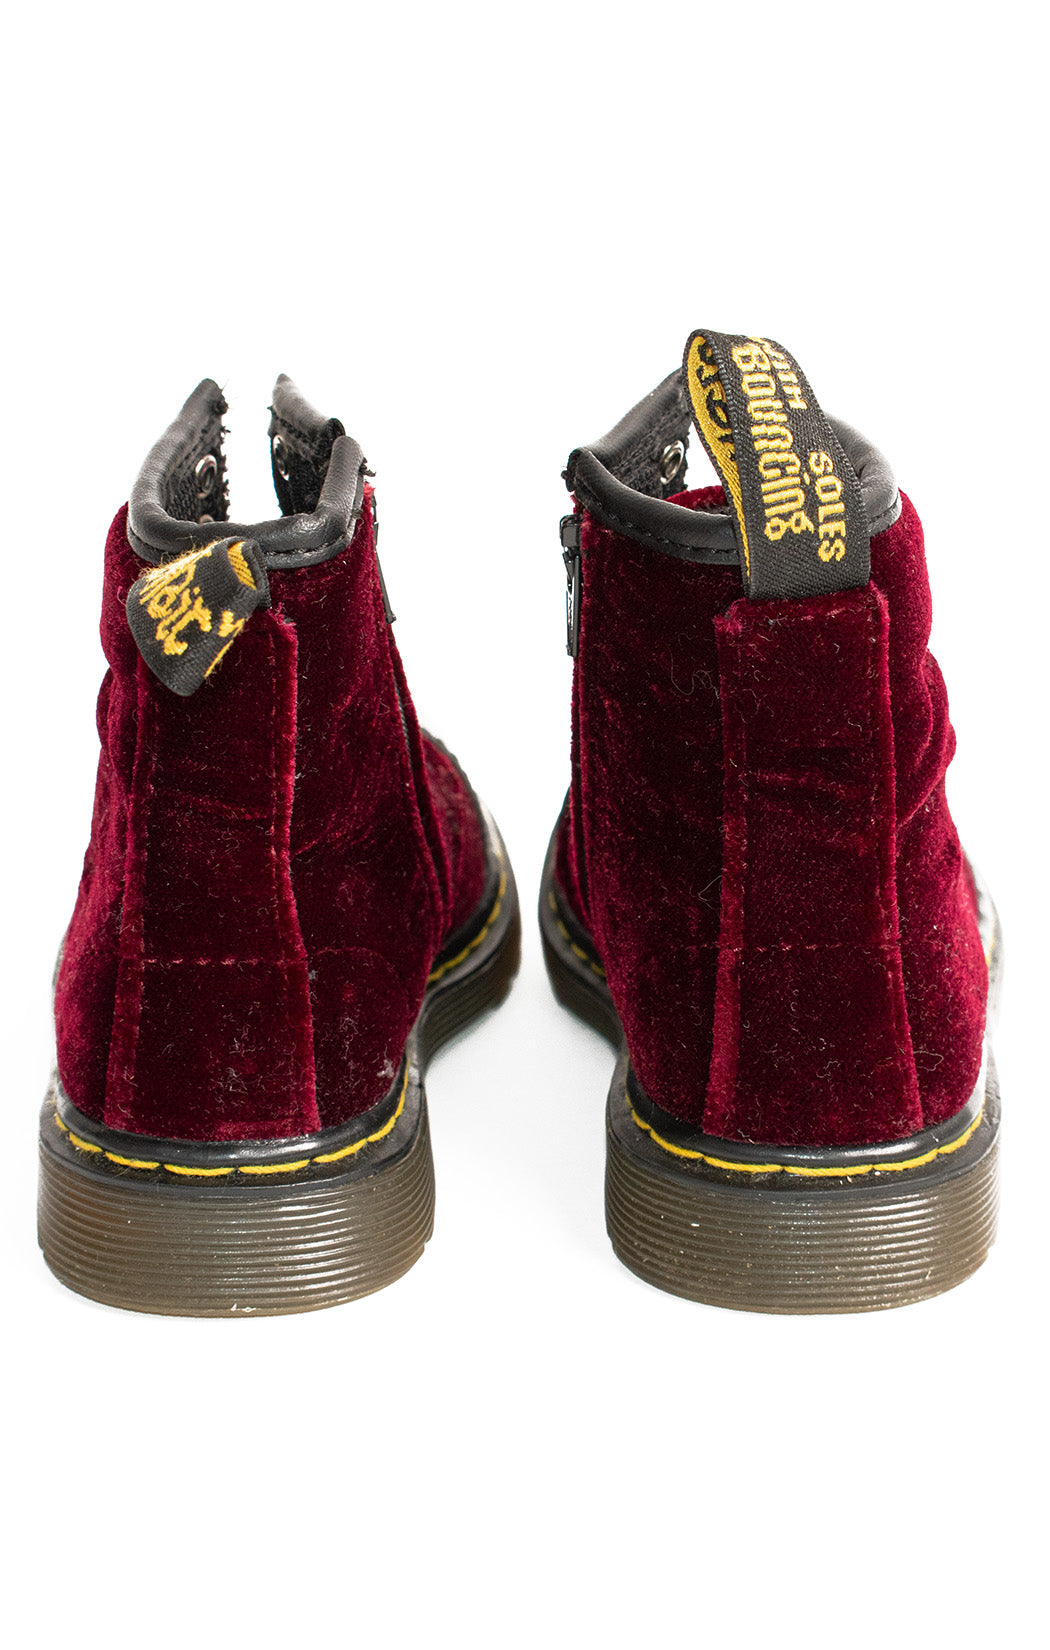 Back view of DR MARTENS Boot